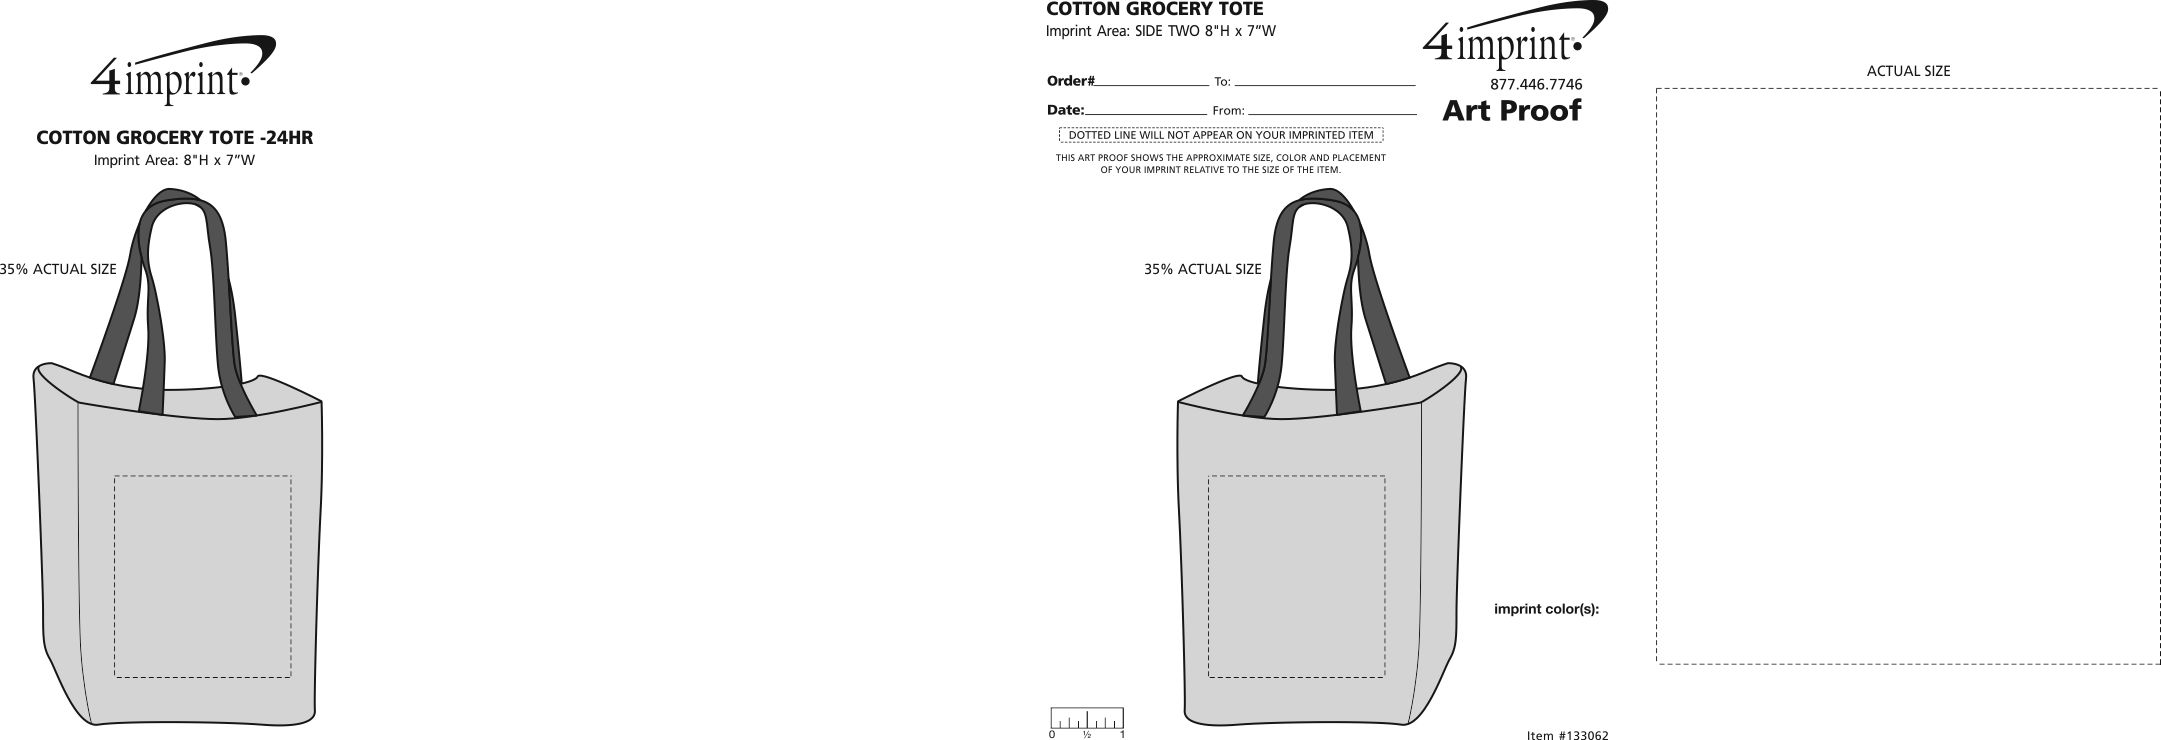 Imprint Area of Cotton Grocery Tote - 24 hr